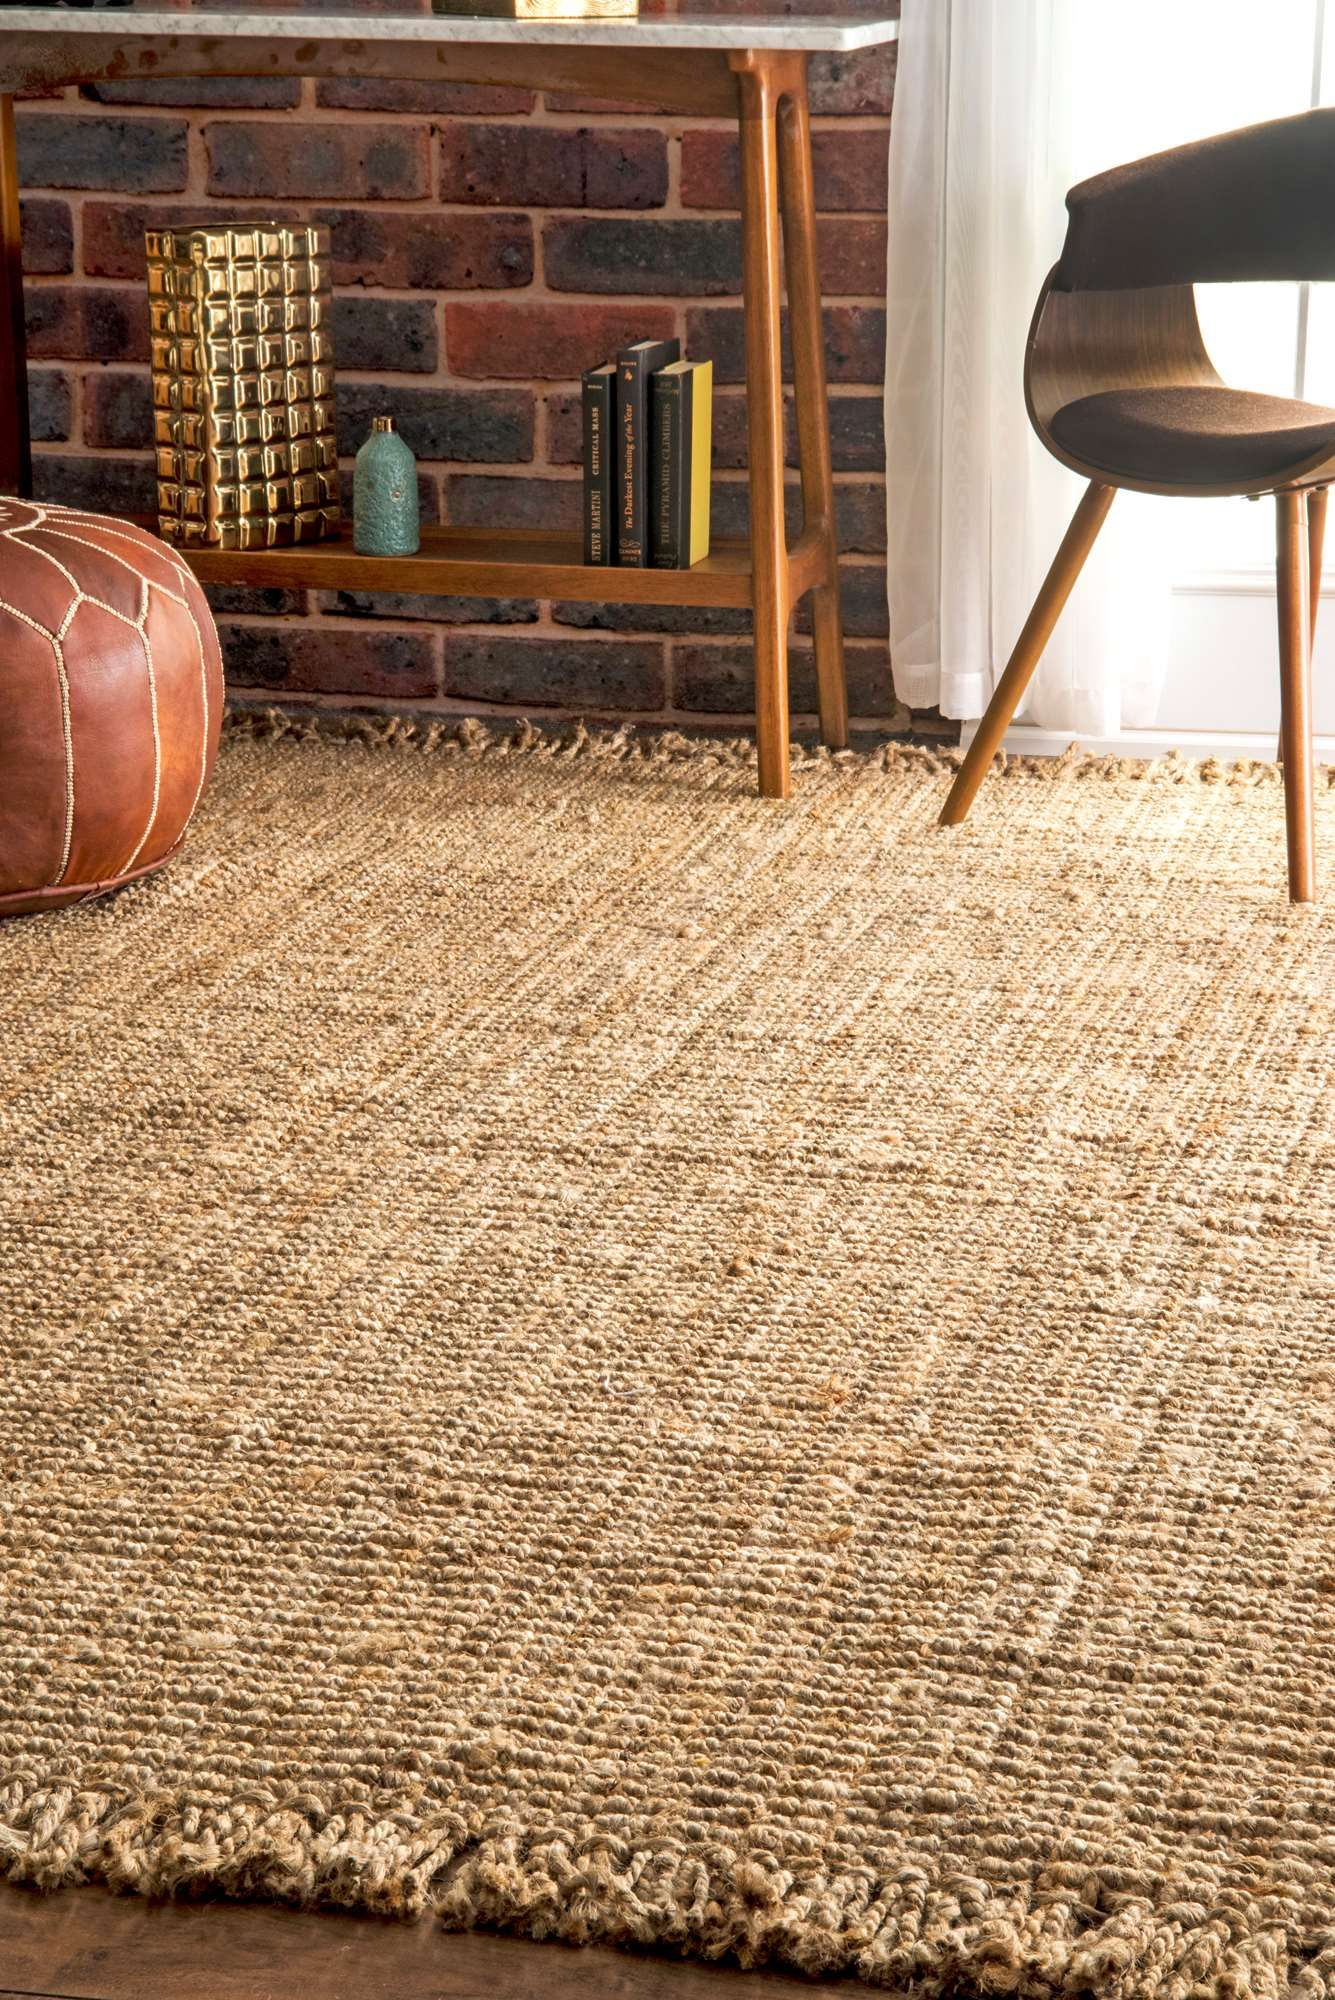 Maui Chunky Loop Rug Rugs Usa Area In Many Styles Including Contemporary Braided Outdoor And Flokati At America S Home